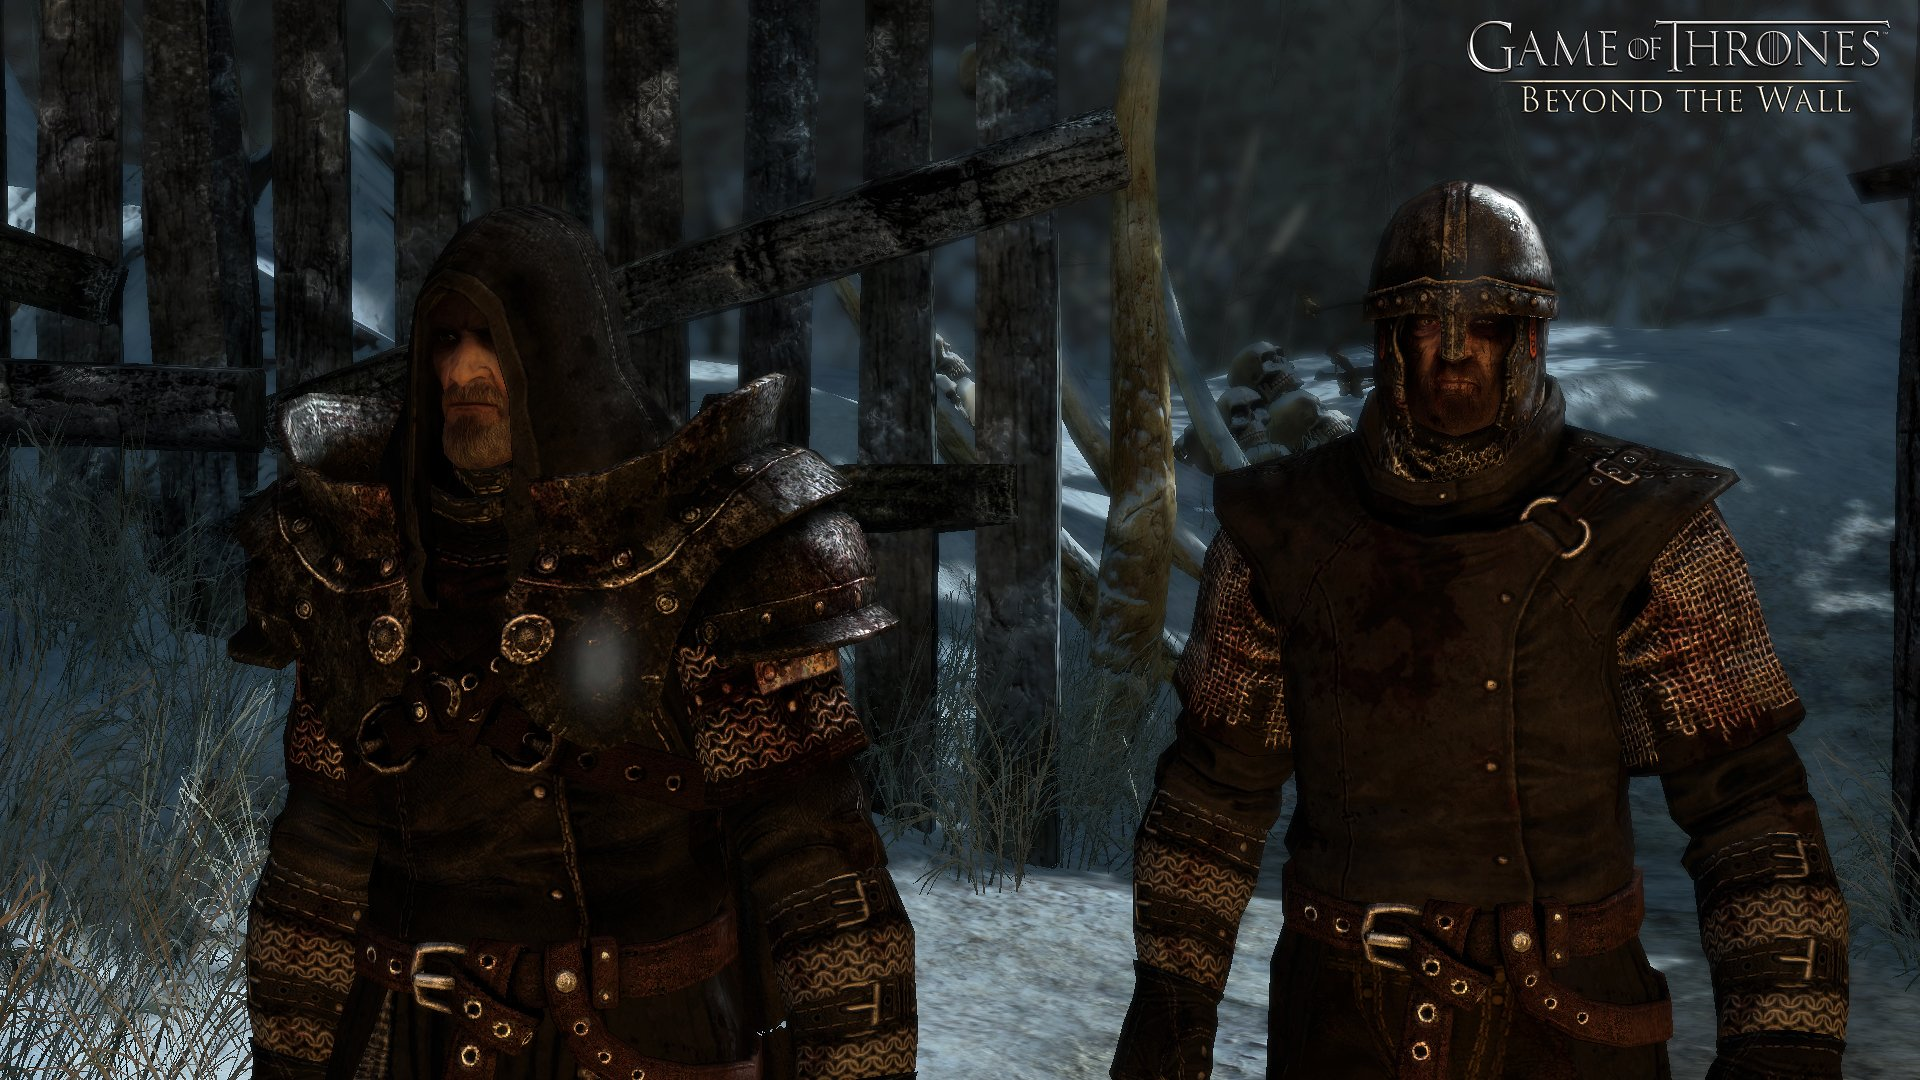 Game Of Thrones DLC Travels Beyond The Wall #24529